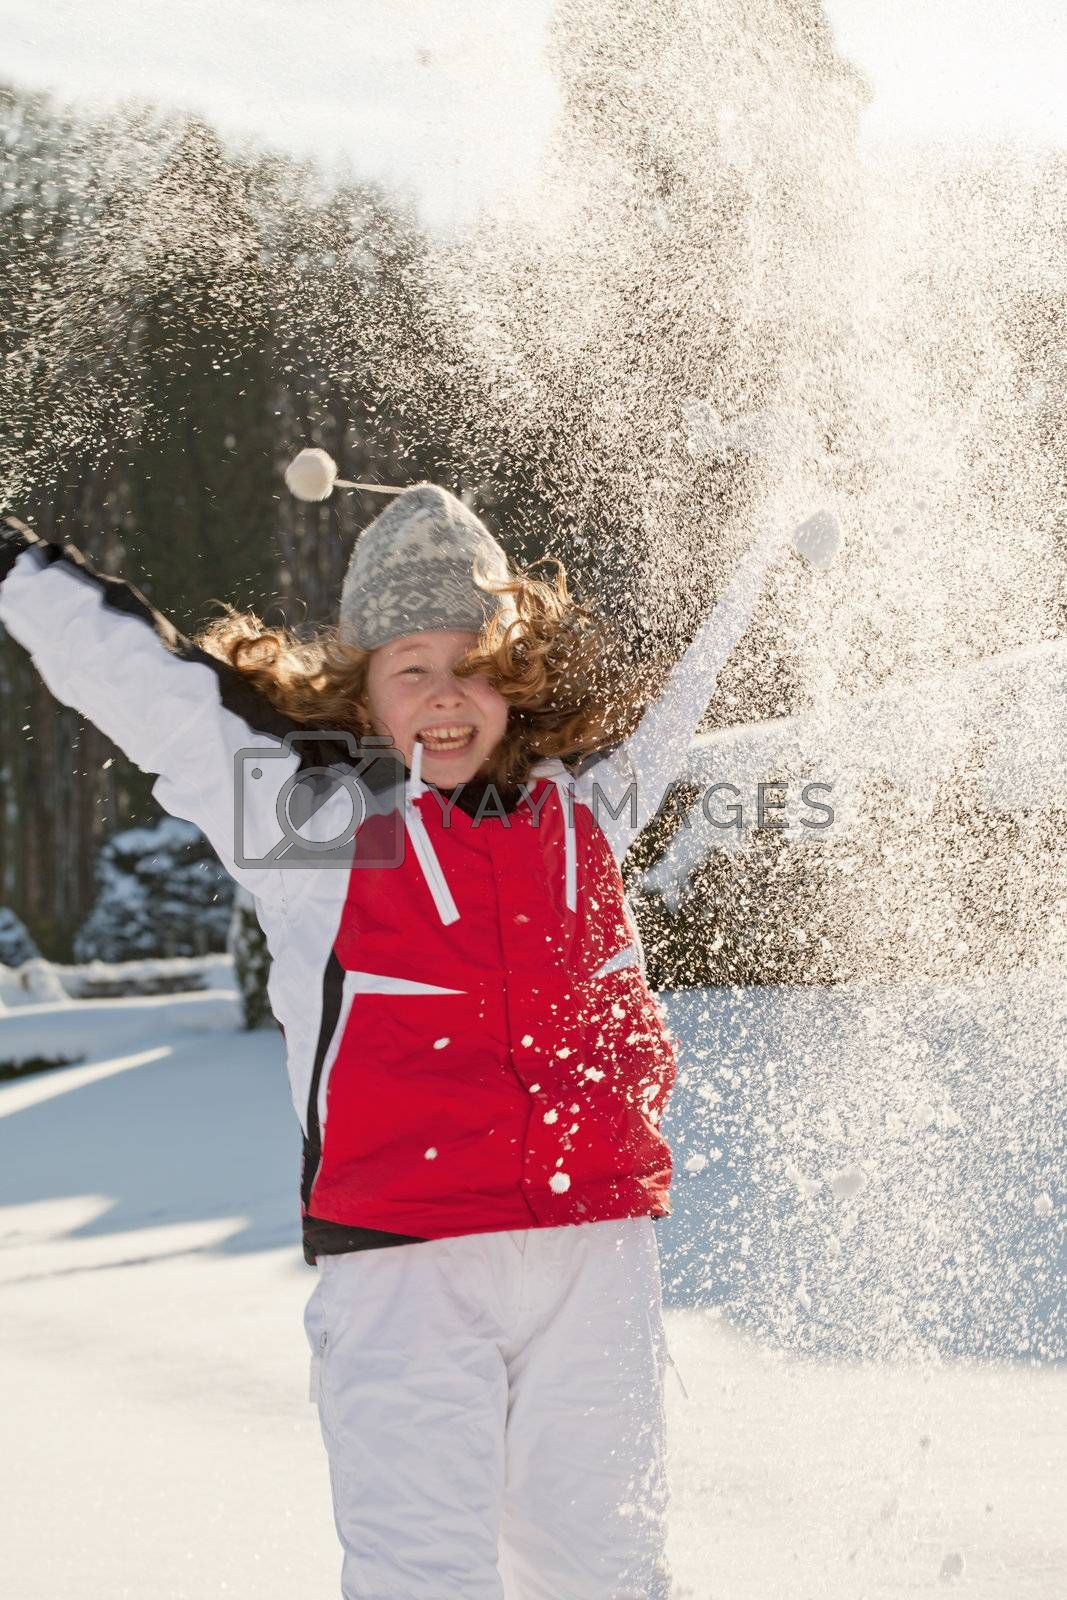 Happy teenager girl in a winter park throwing snow up - motion blur on girl's face